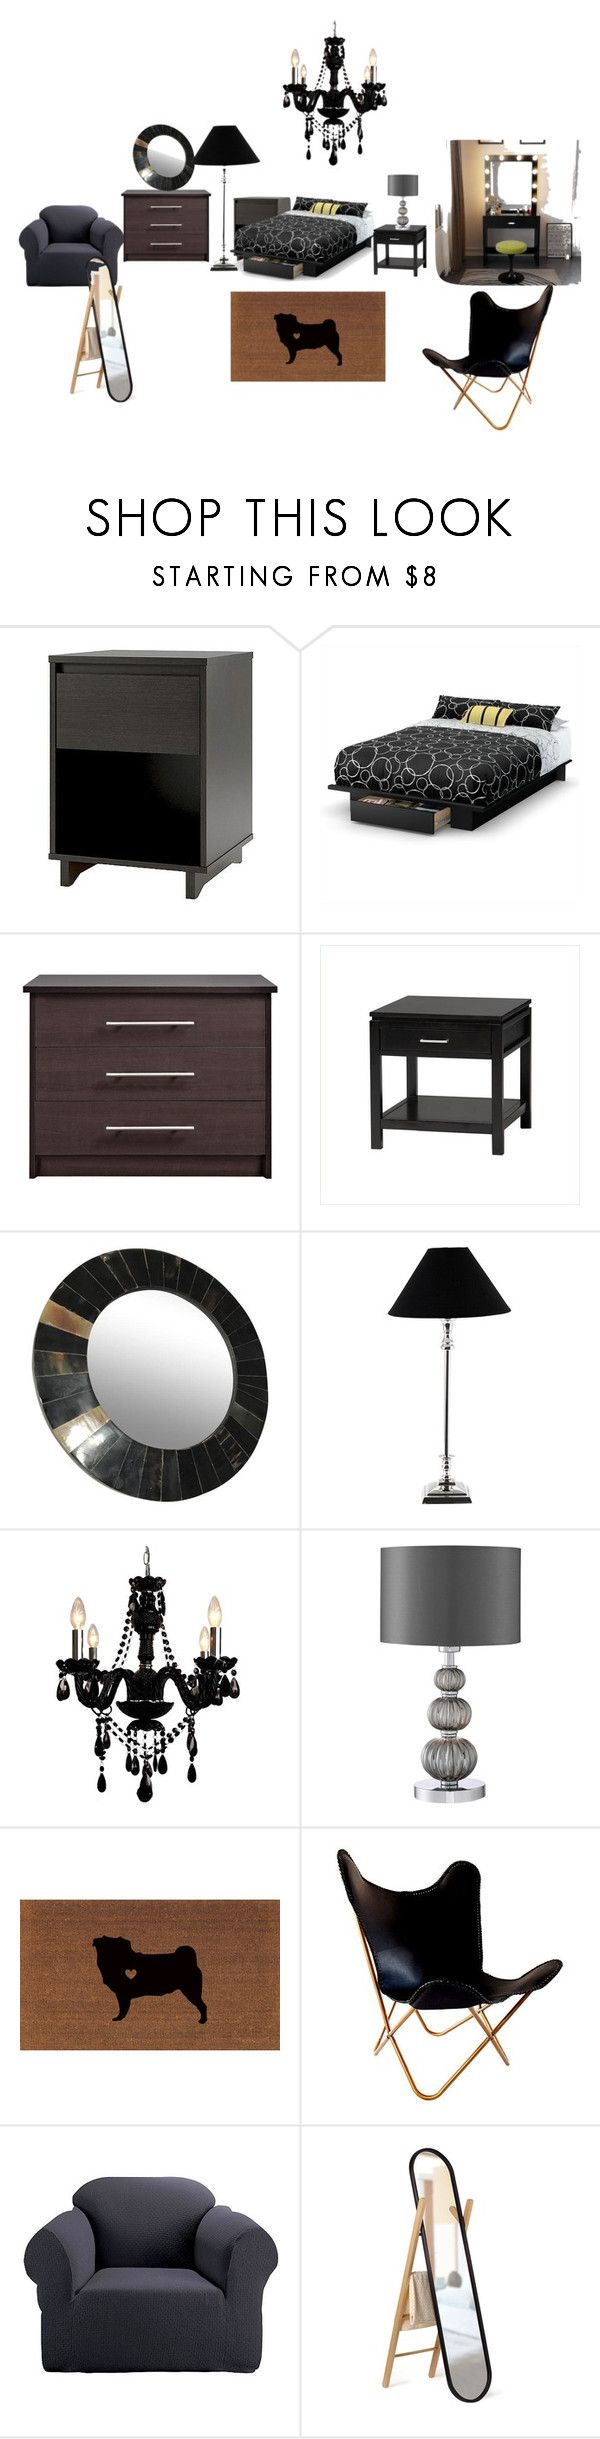 """""""Budget bed room"""" by lillie-massey on Polyvore featuring interior, interiors, interior design, home, home decor, interior decorating, Room Essentials, South Shore, Linon and Lene Bjerre"""